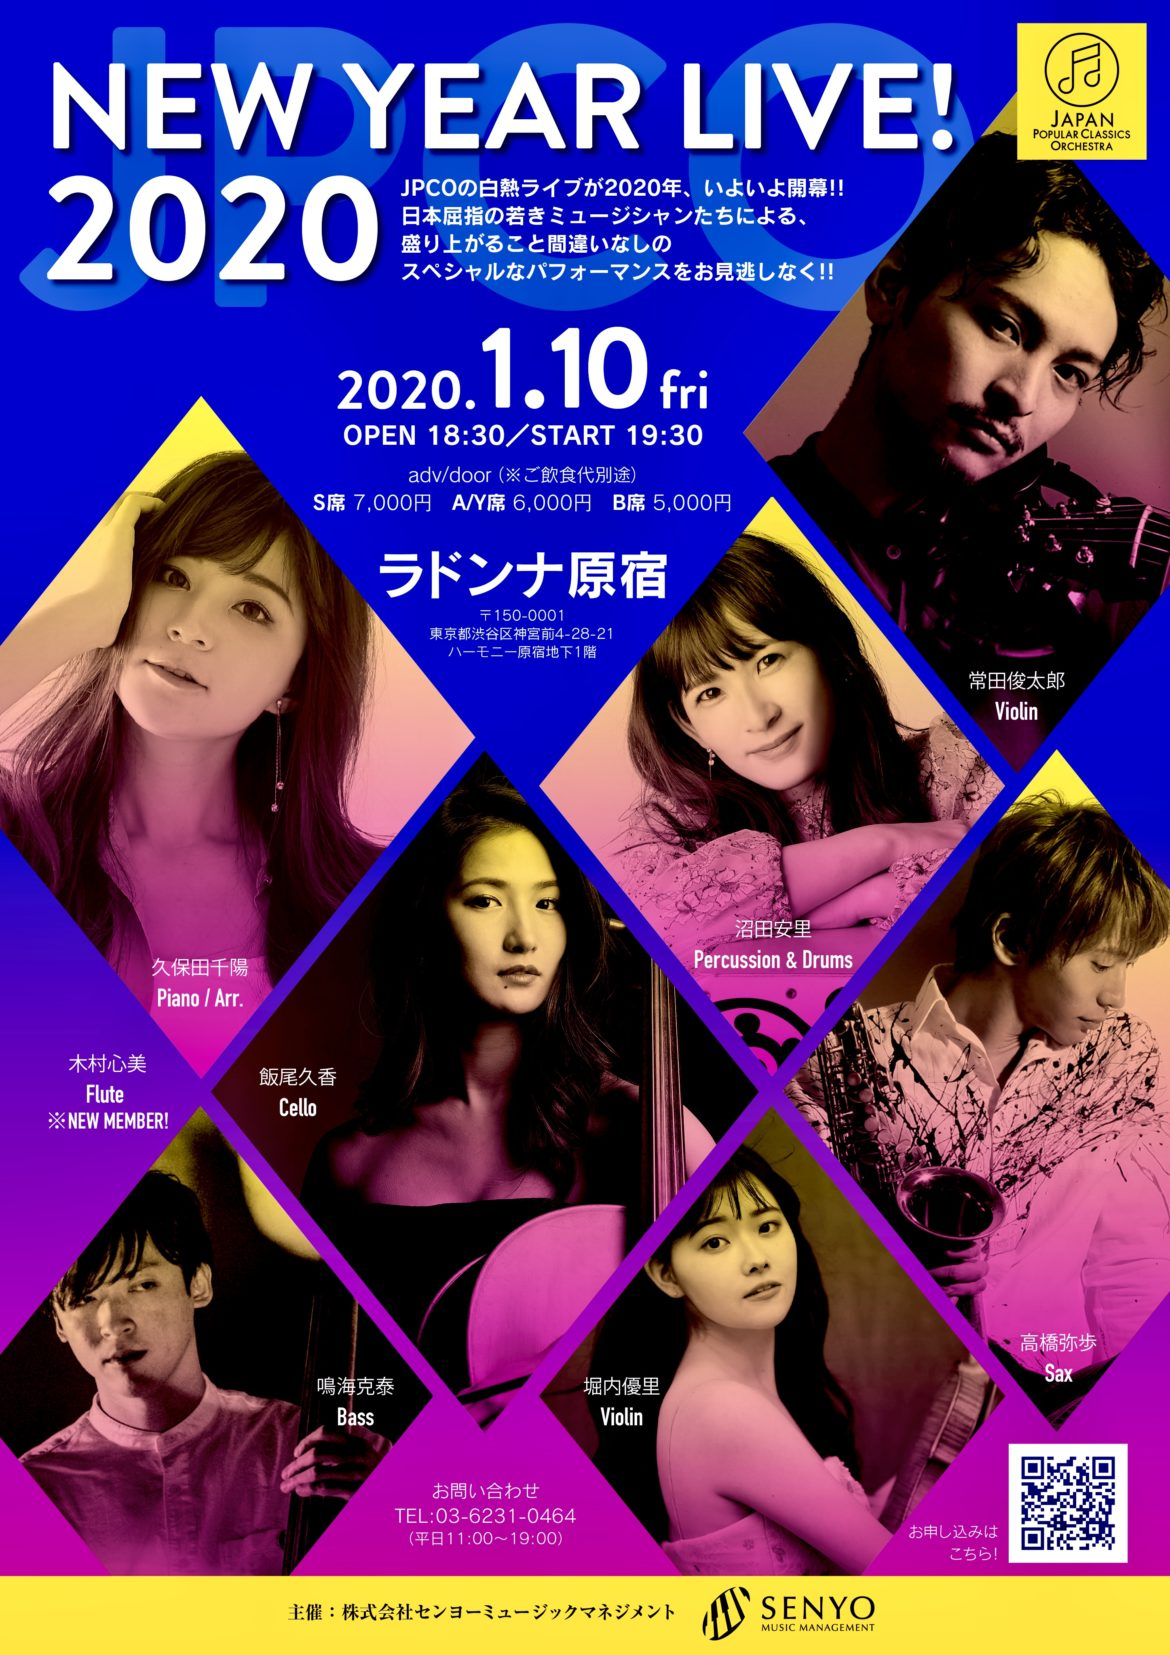 2020.1.10  JPCO NEW YEAR LIVE! 2020